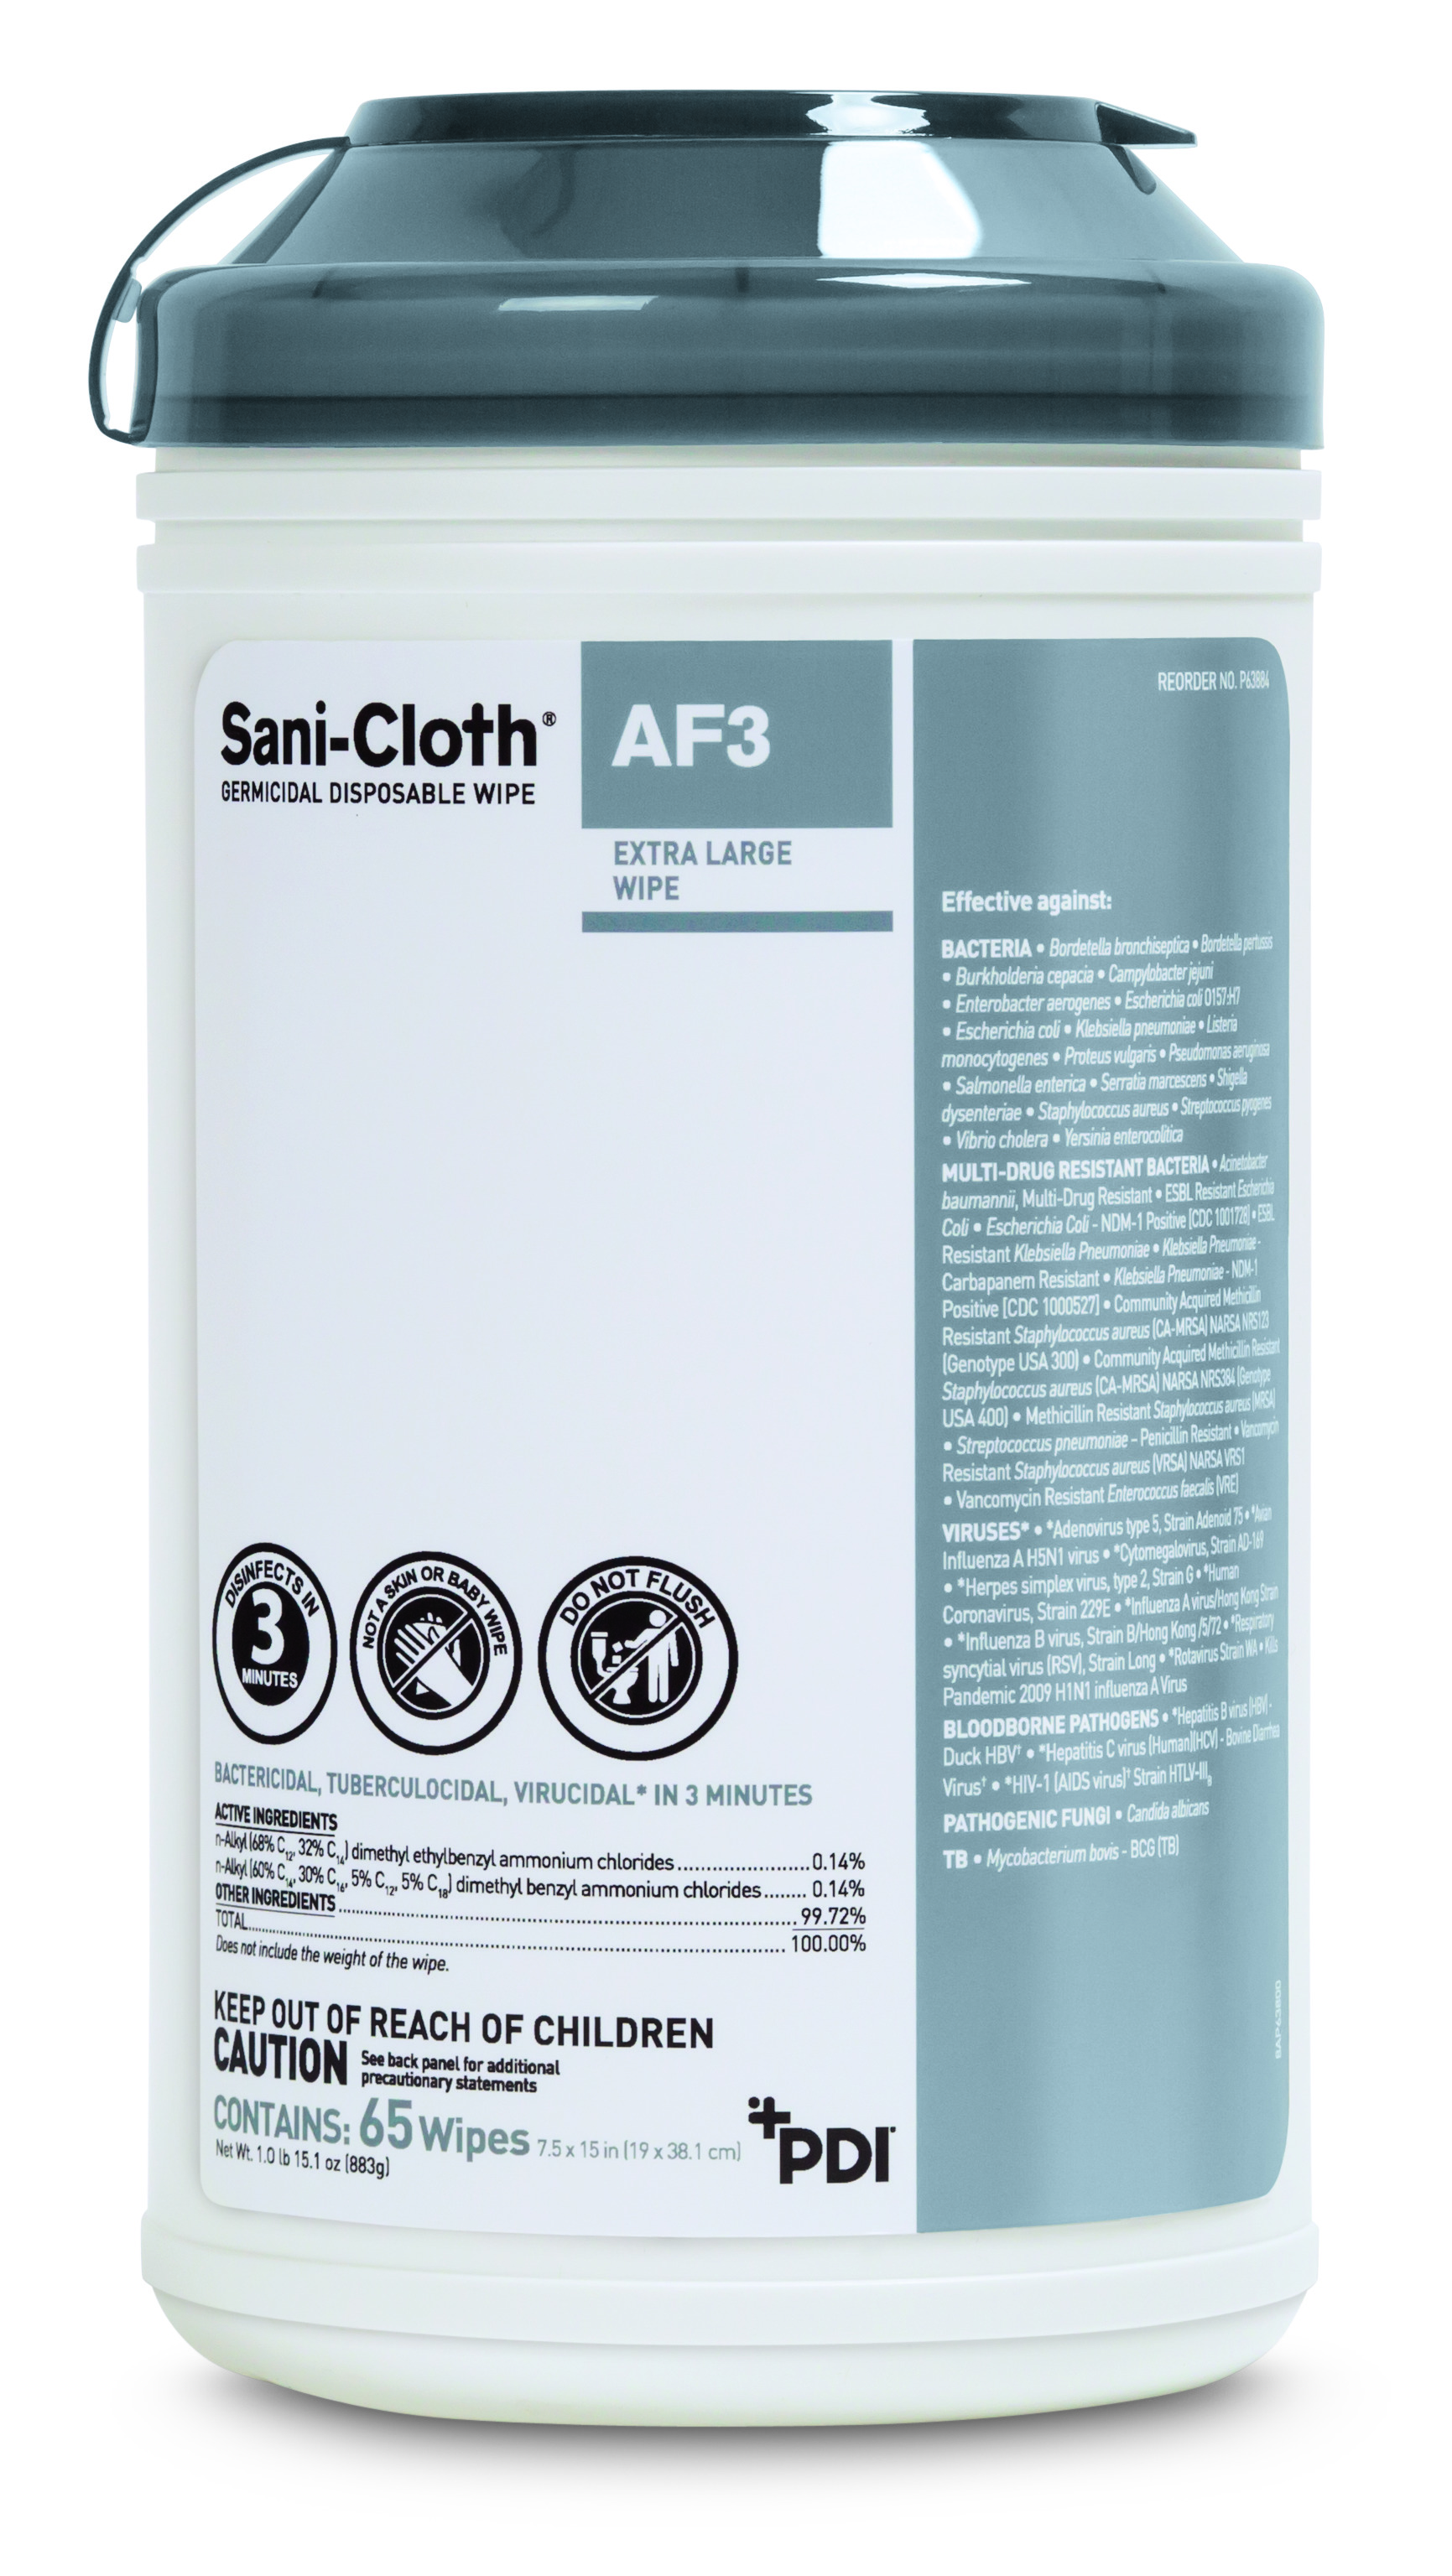 Sani-cloth Af3 Germicidal Disposable Wipe | X-large Canister (case Of 6 Canisters, 65 Sheets Per Ca